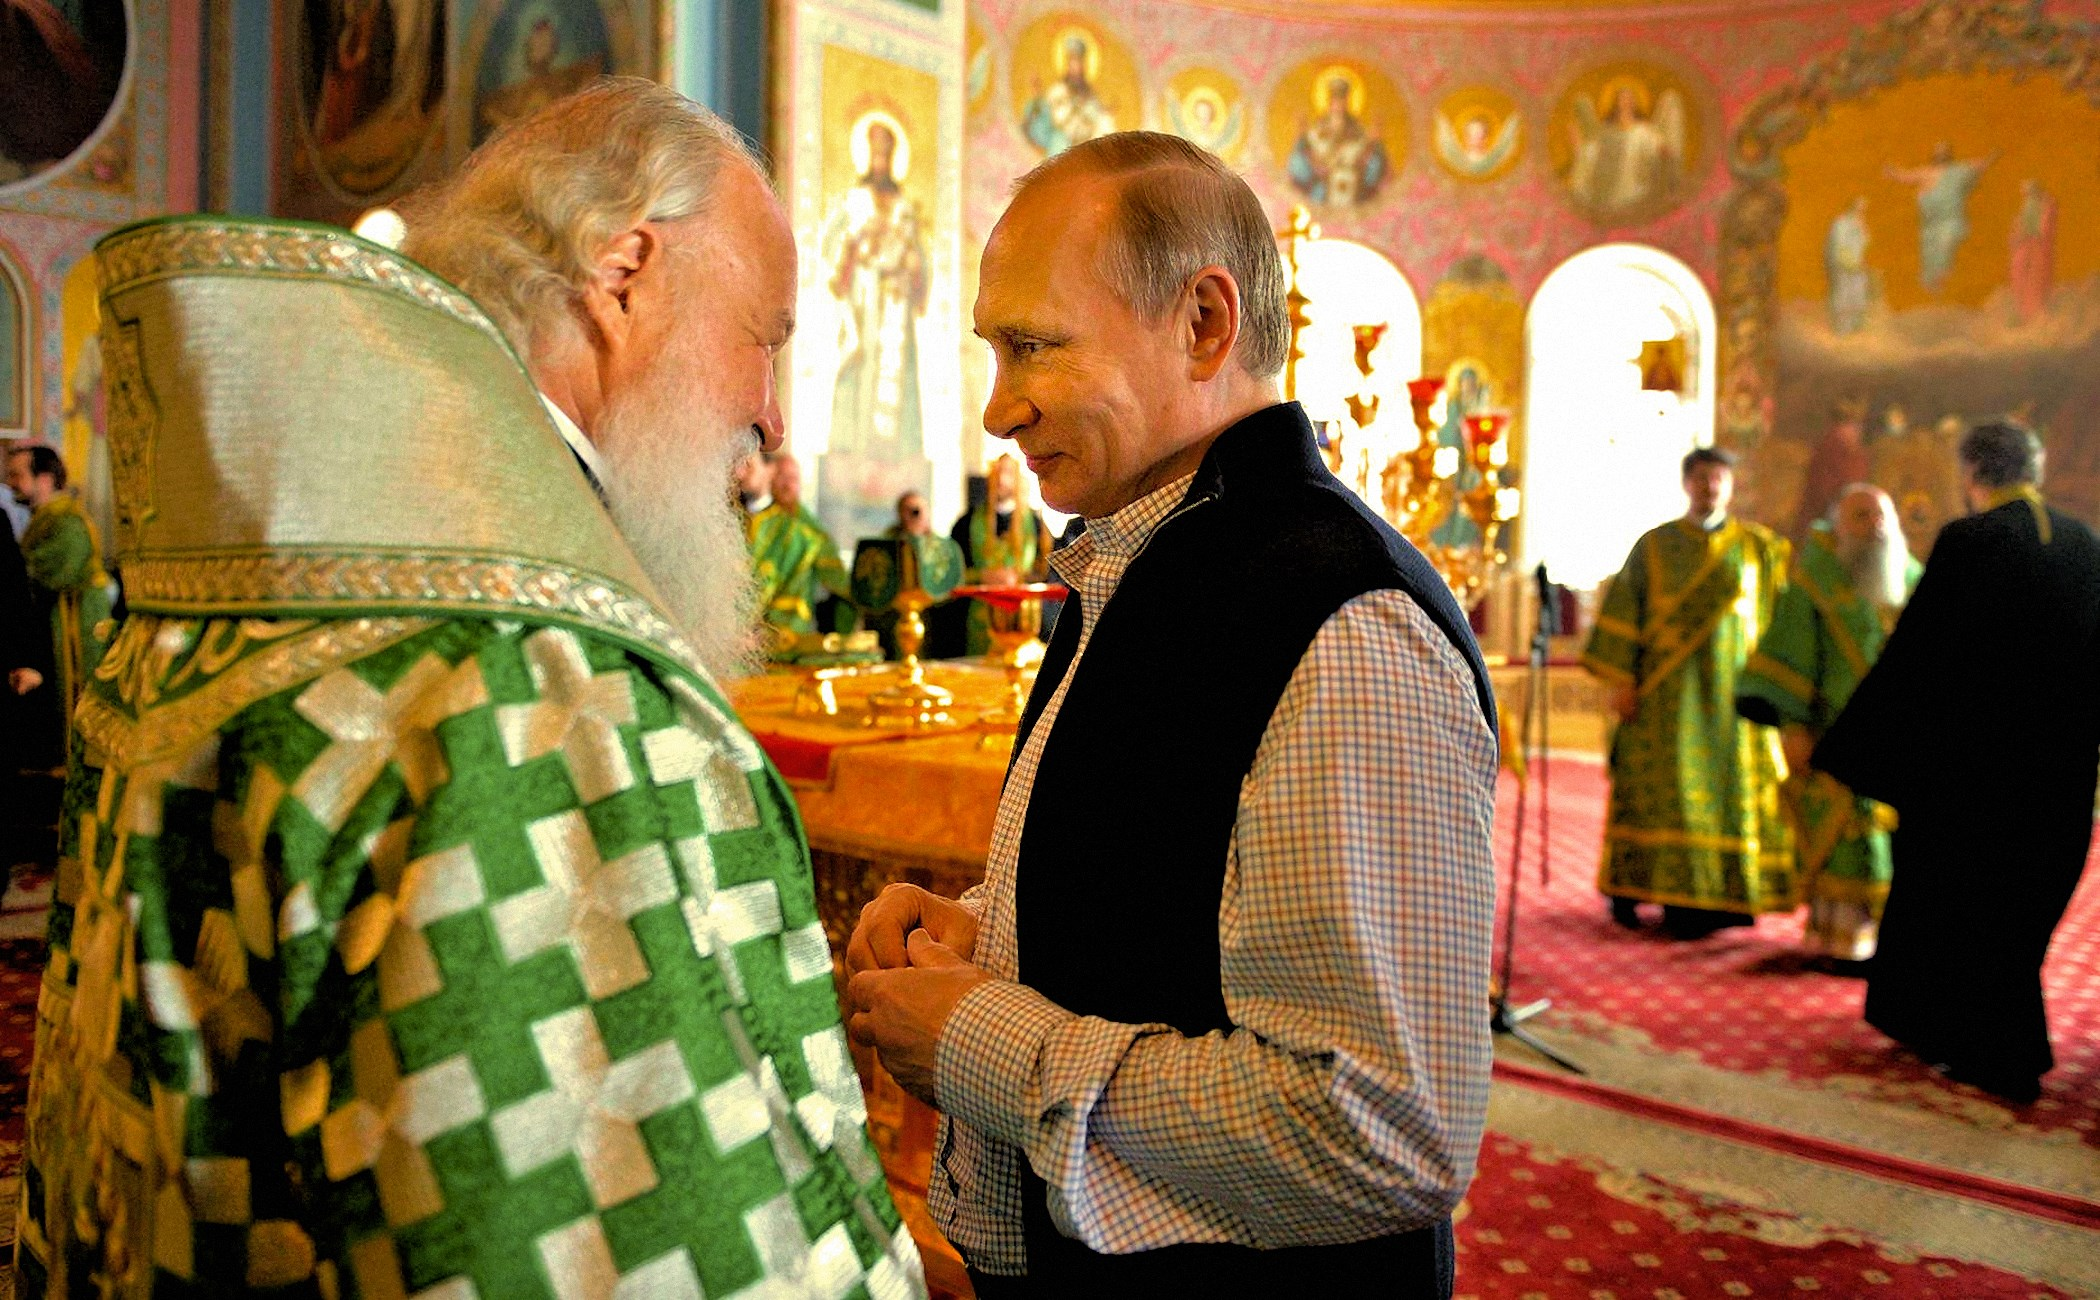 00 putin and kirill in valaam 130716